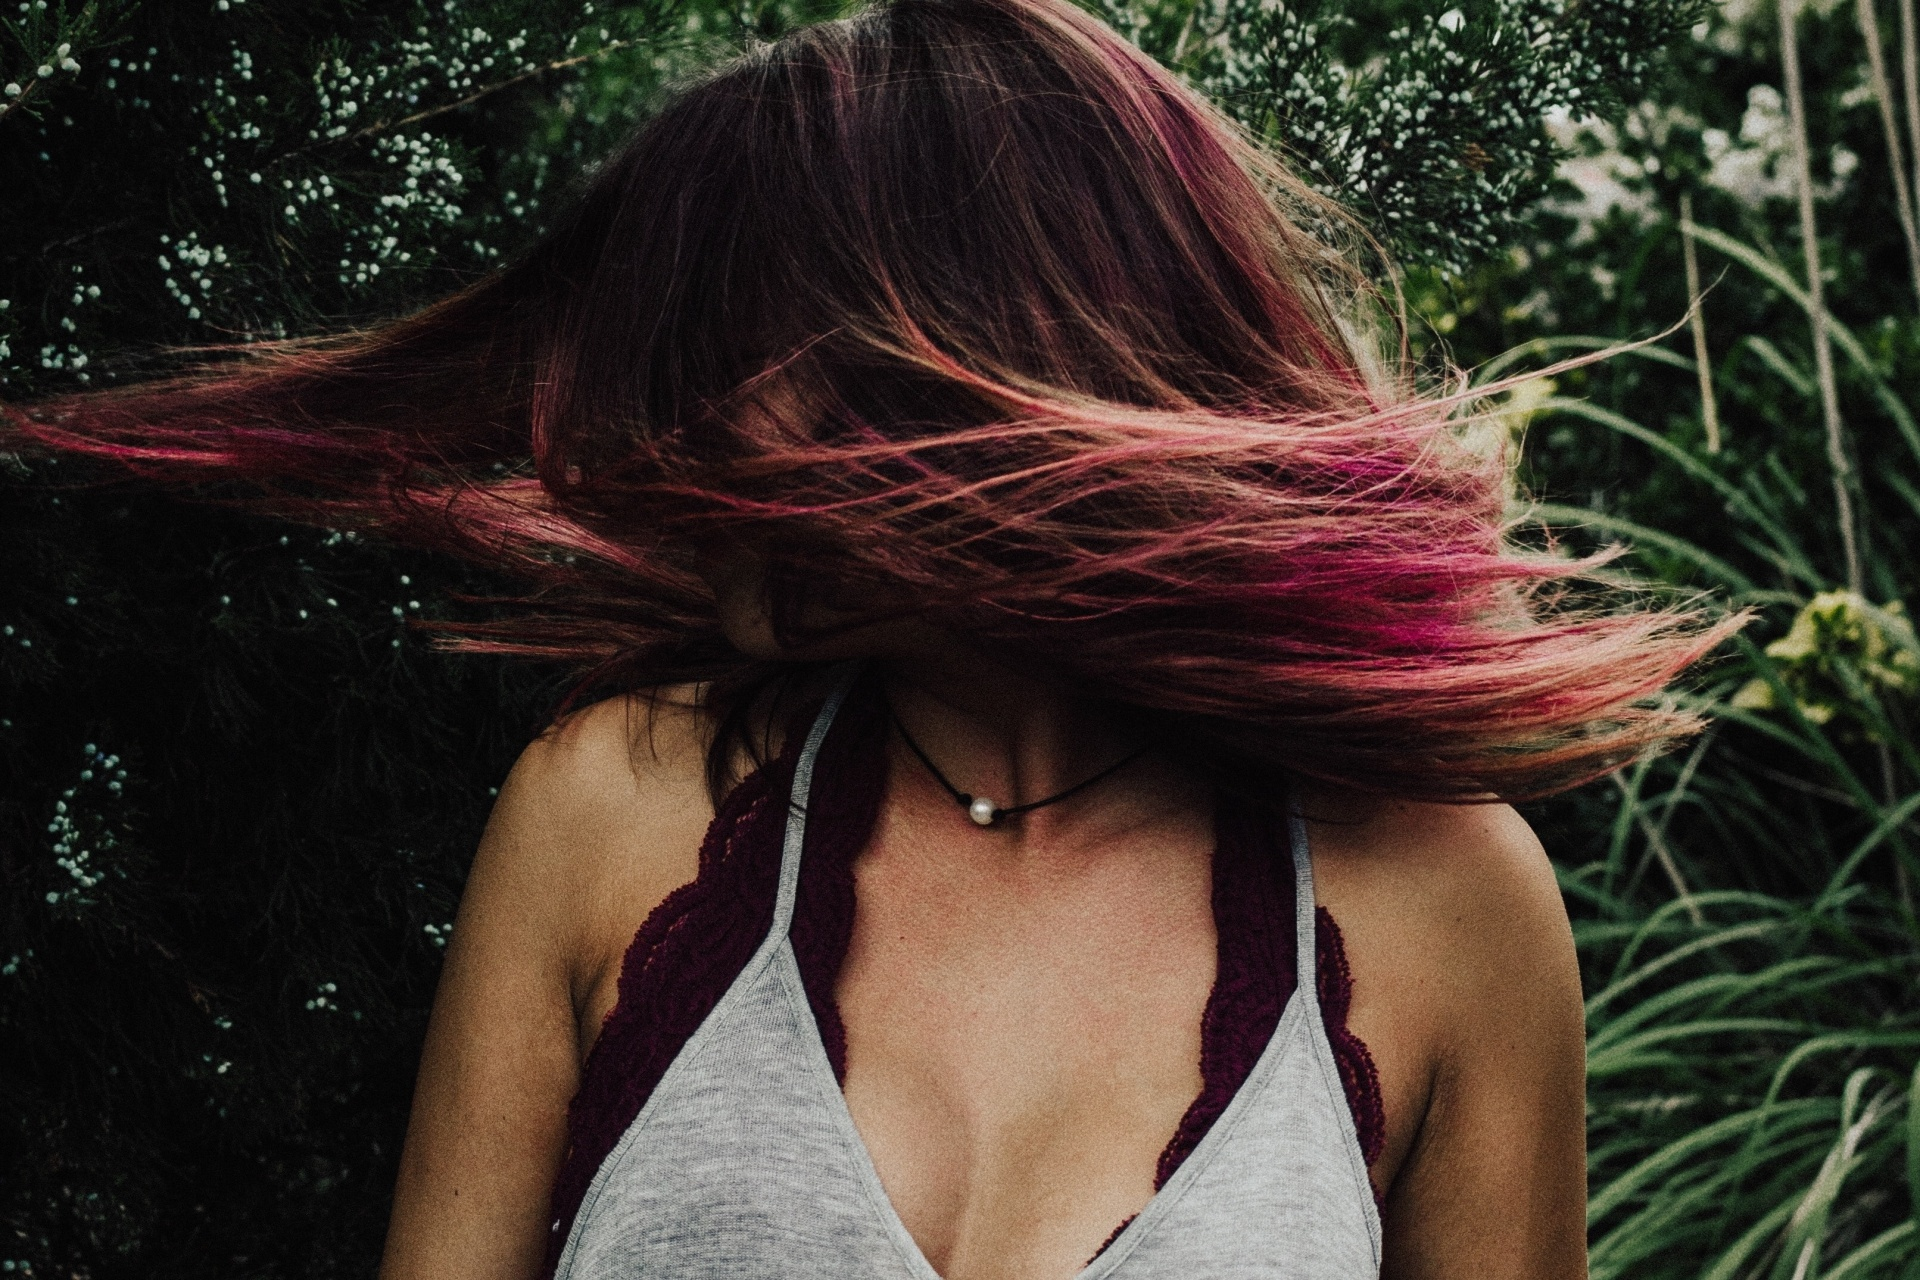 girl with spinning hair, happy woman, feminism, feminist poetry